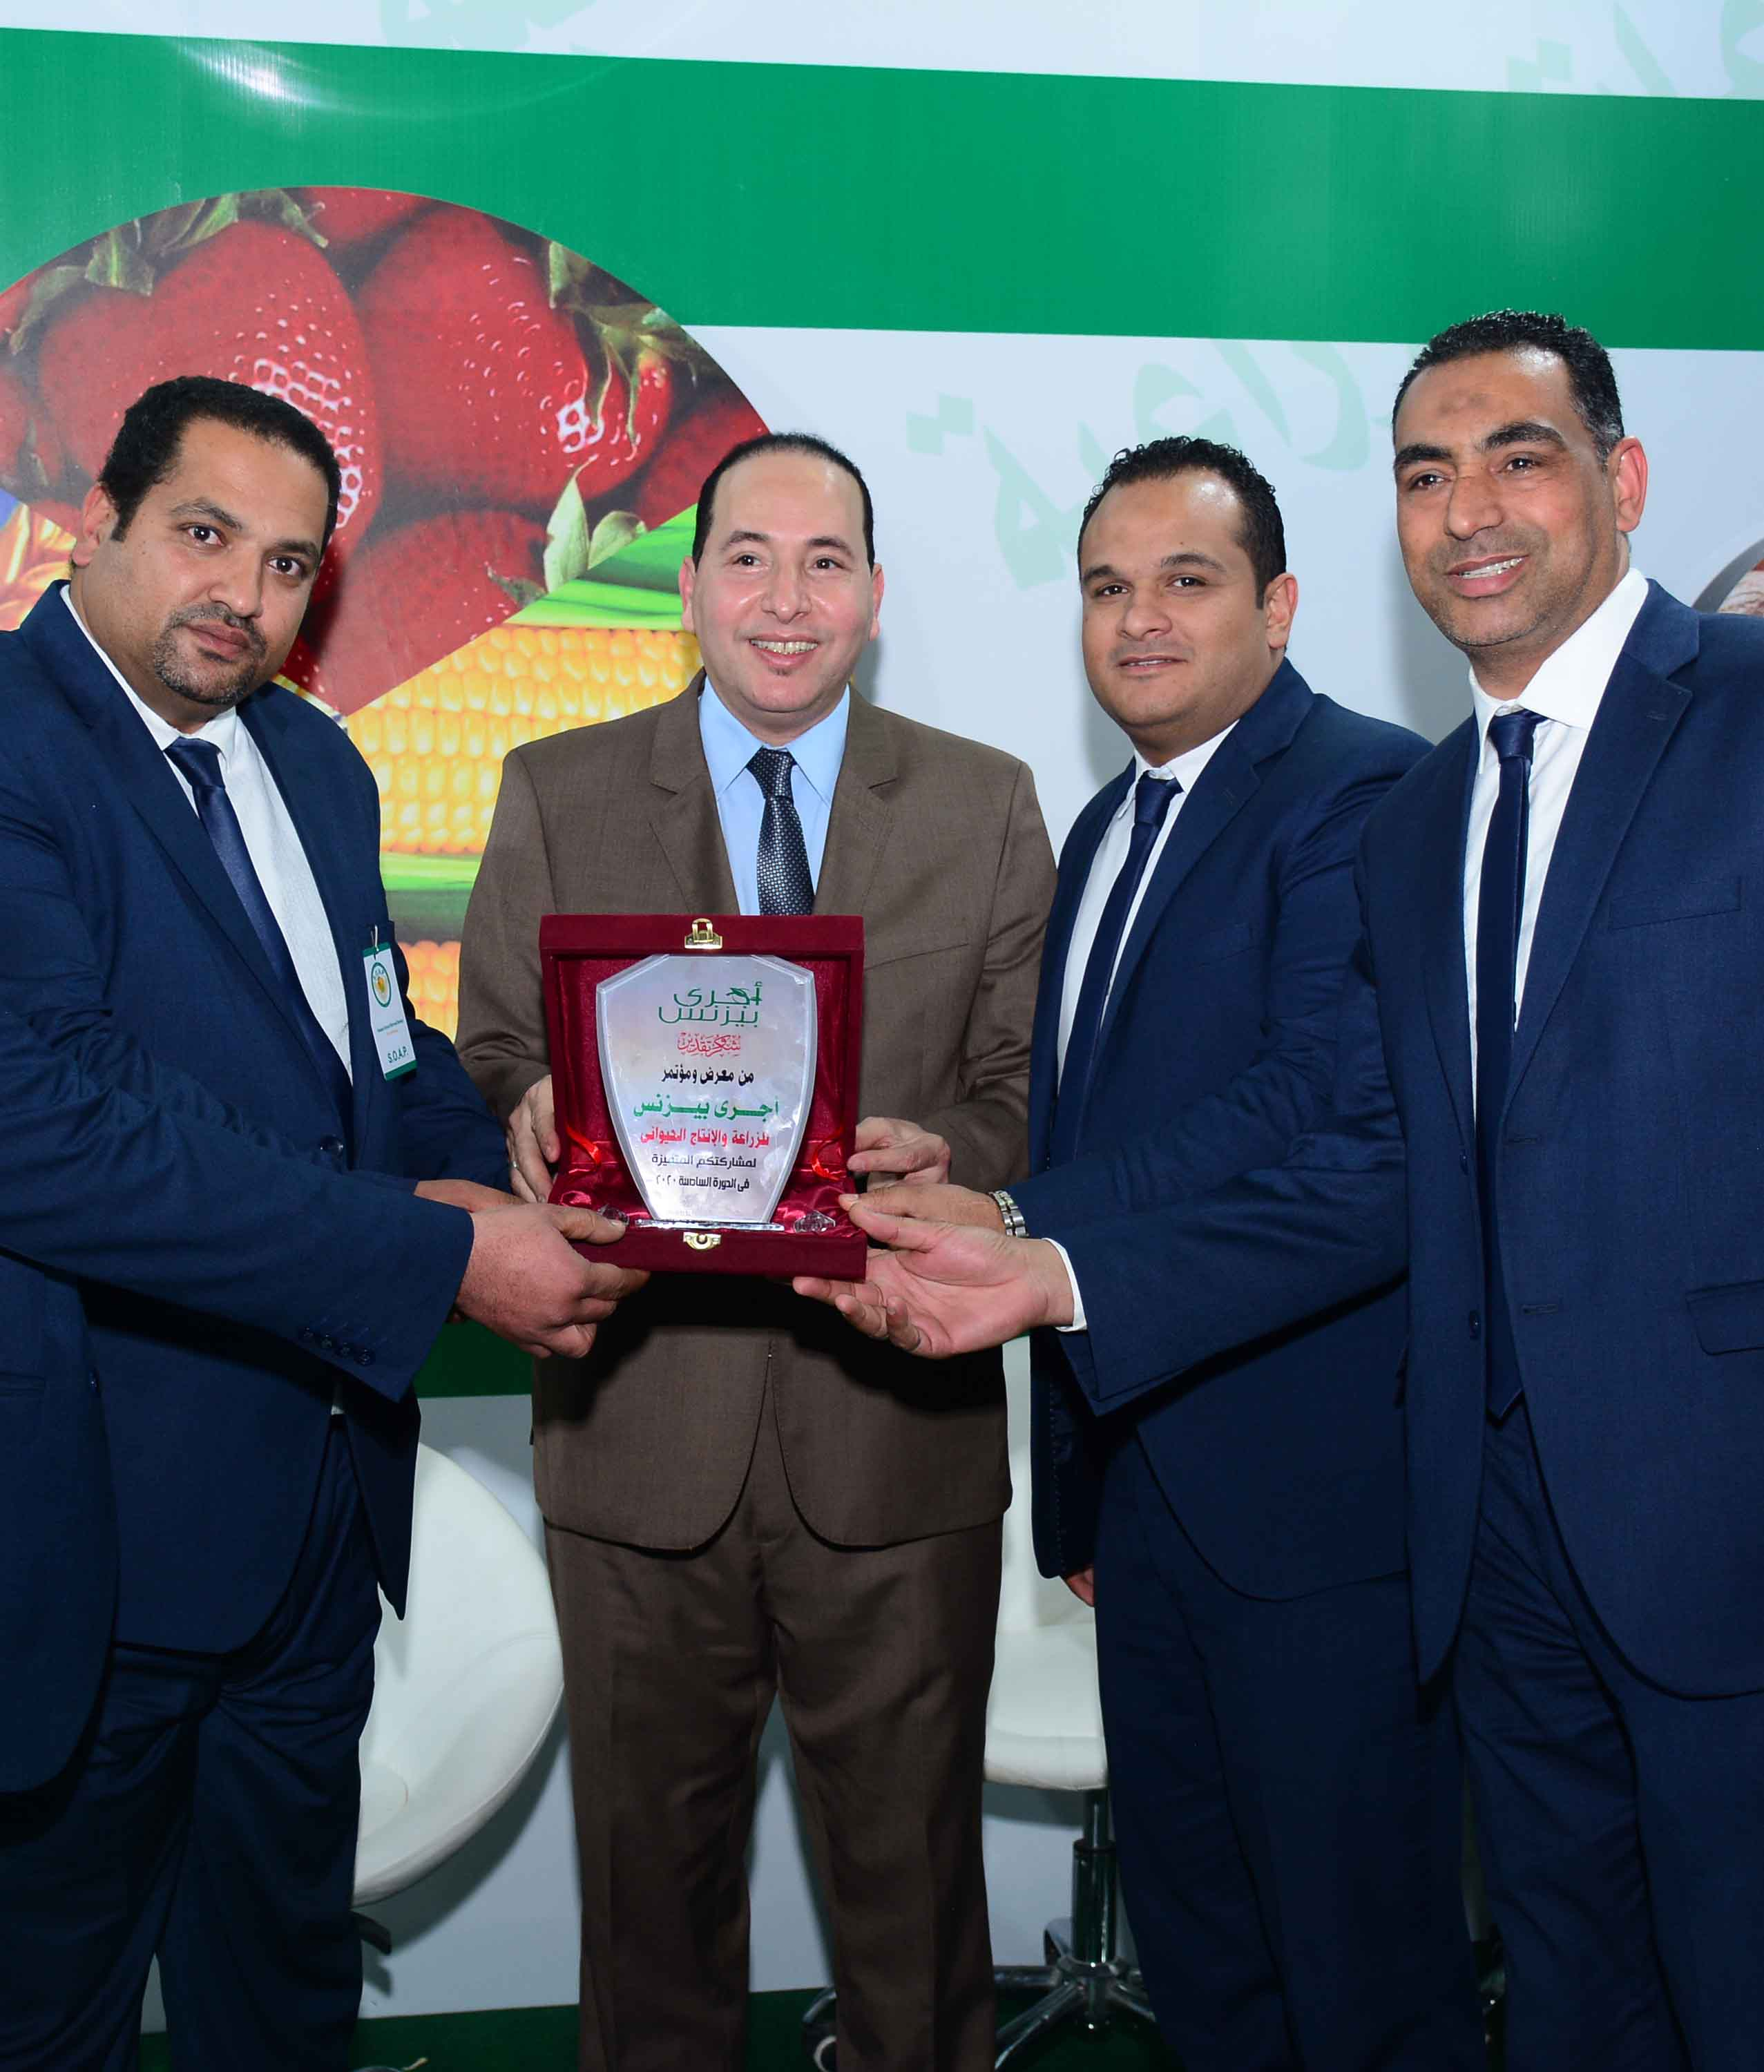 Sixth of October for agricultural projects